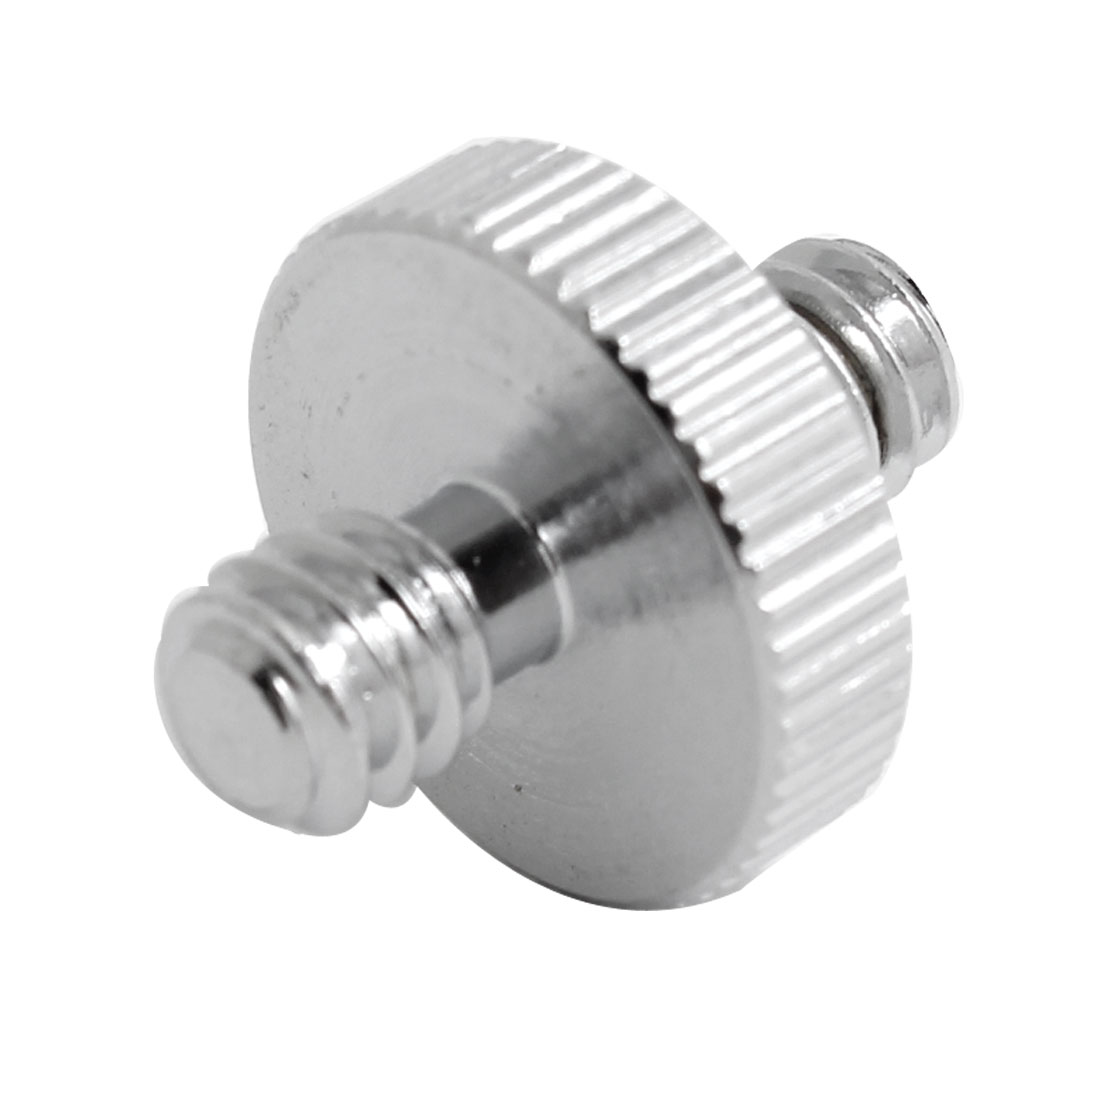 "Camera 1/4"" to 1/4"" Male/Male Thread Flash Light Stand Screw Adapter"